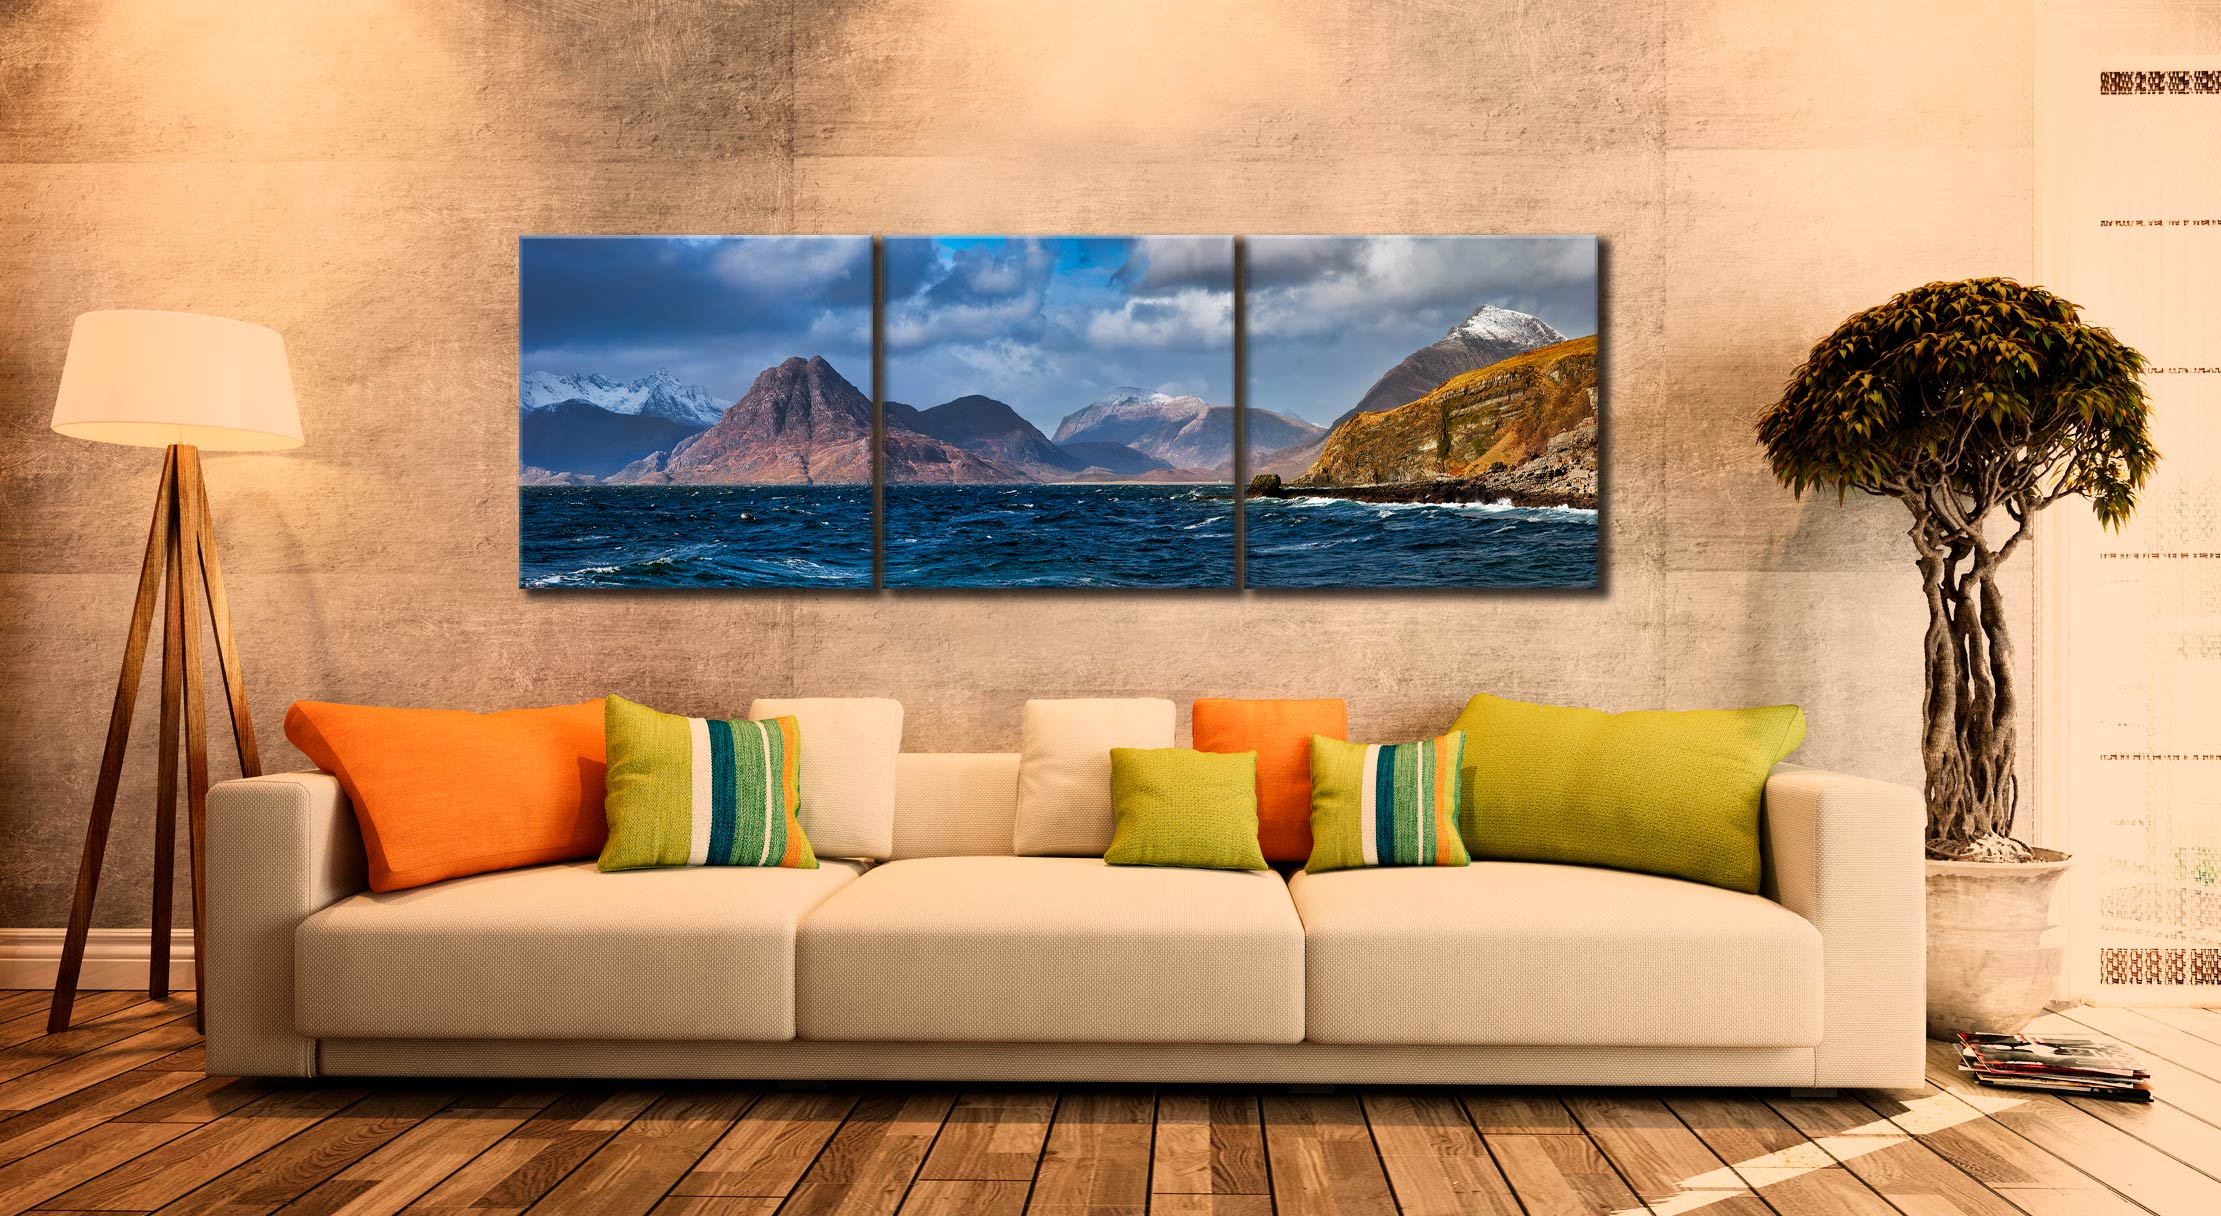 Cuillins From Elgol - 3 Panel Canvas on Wall